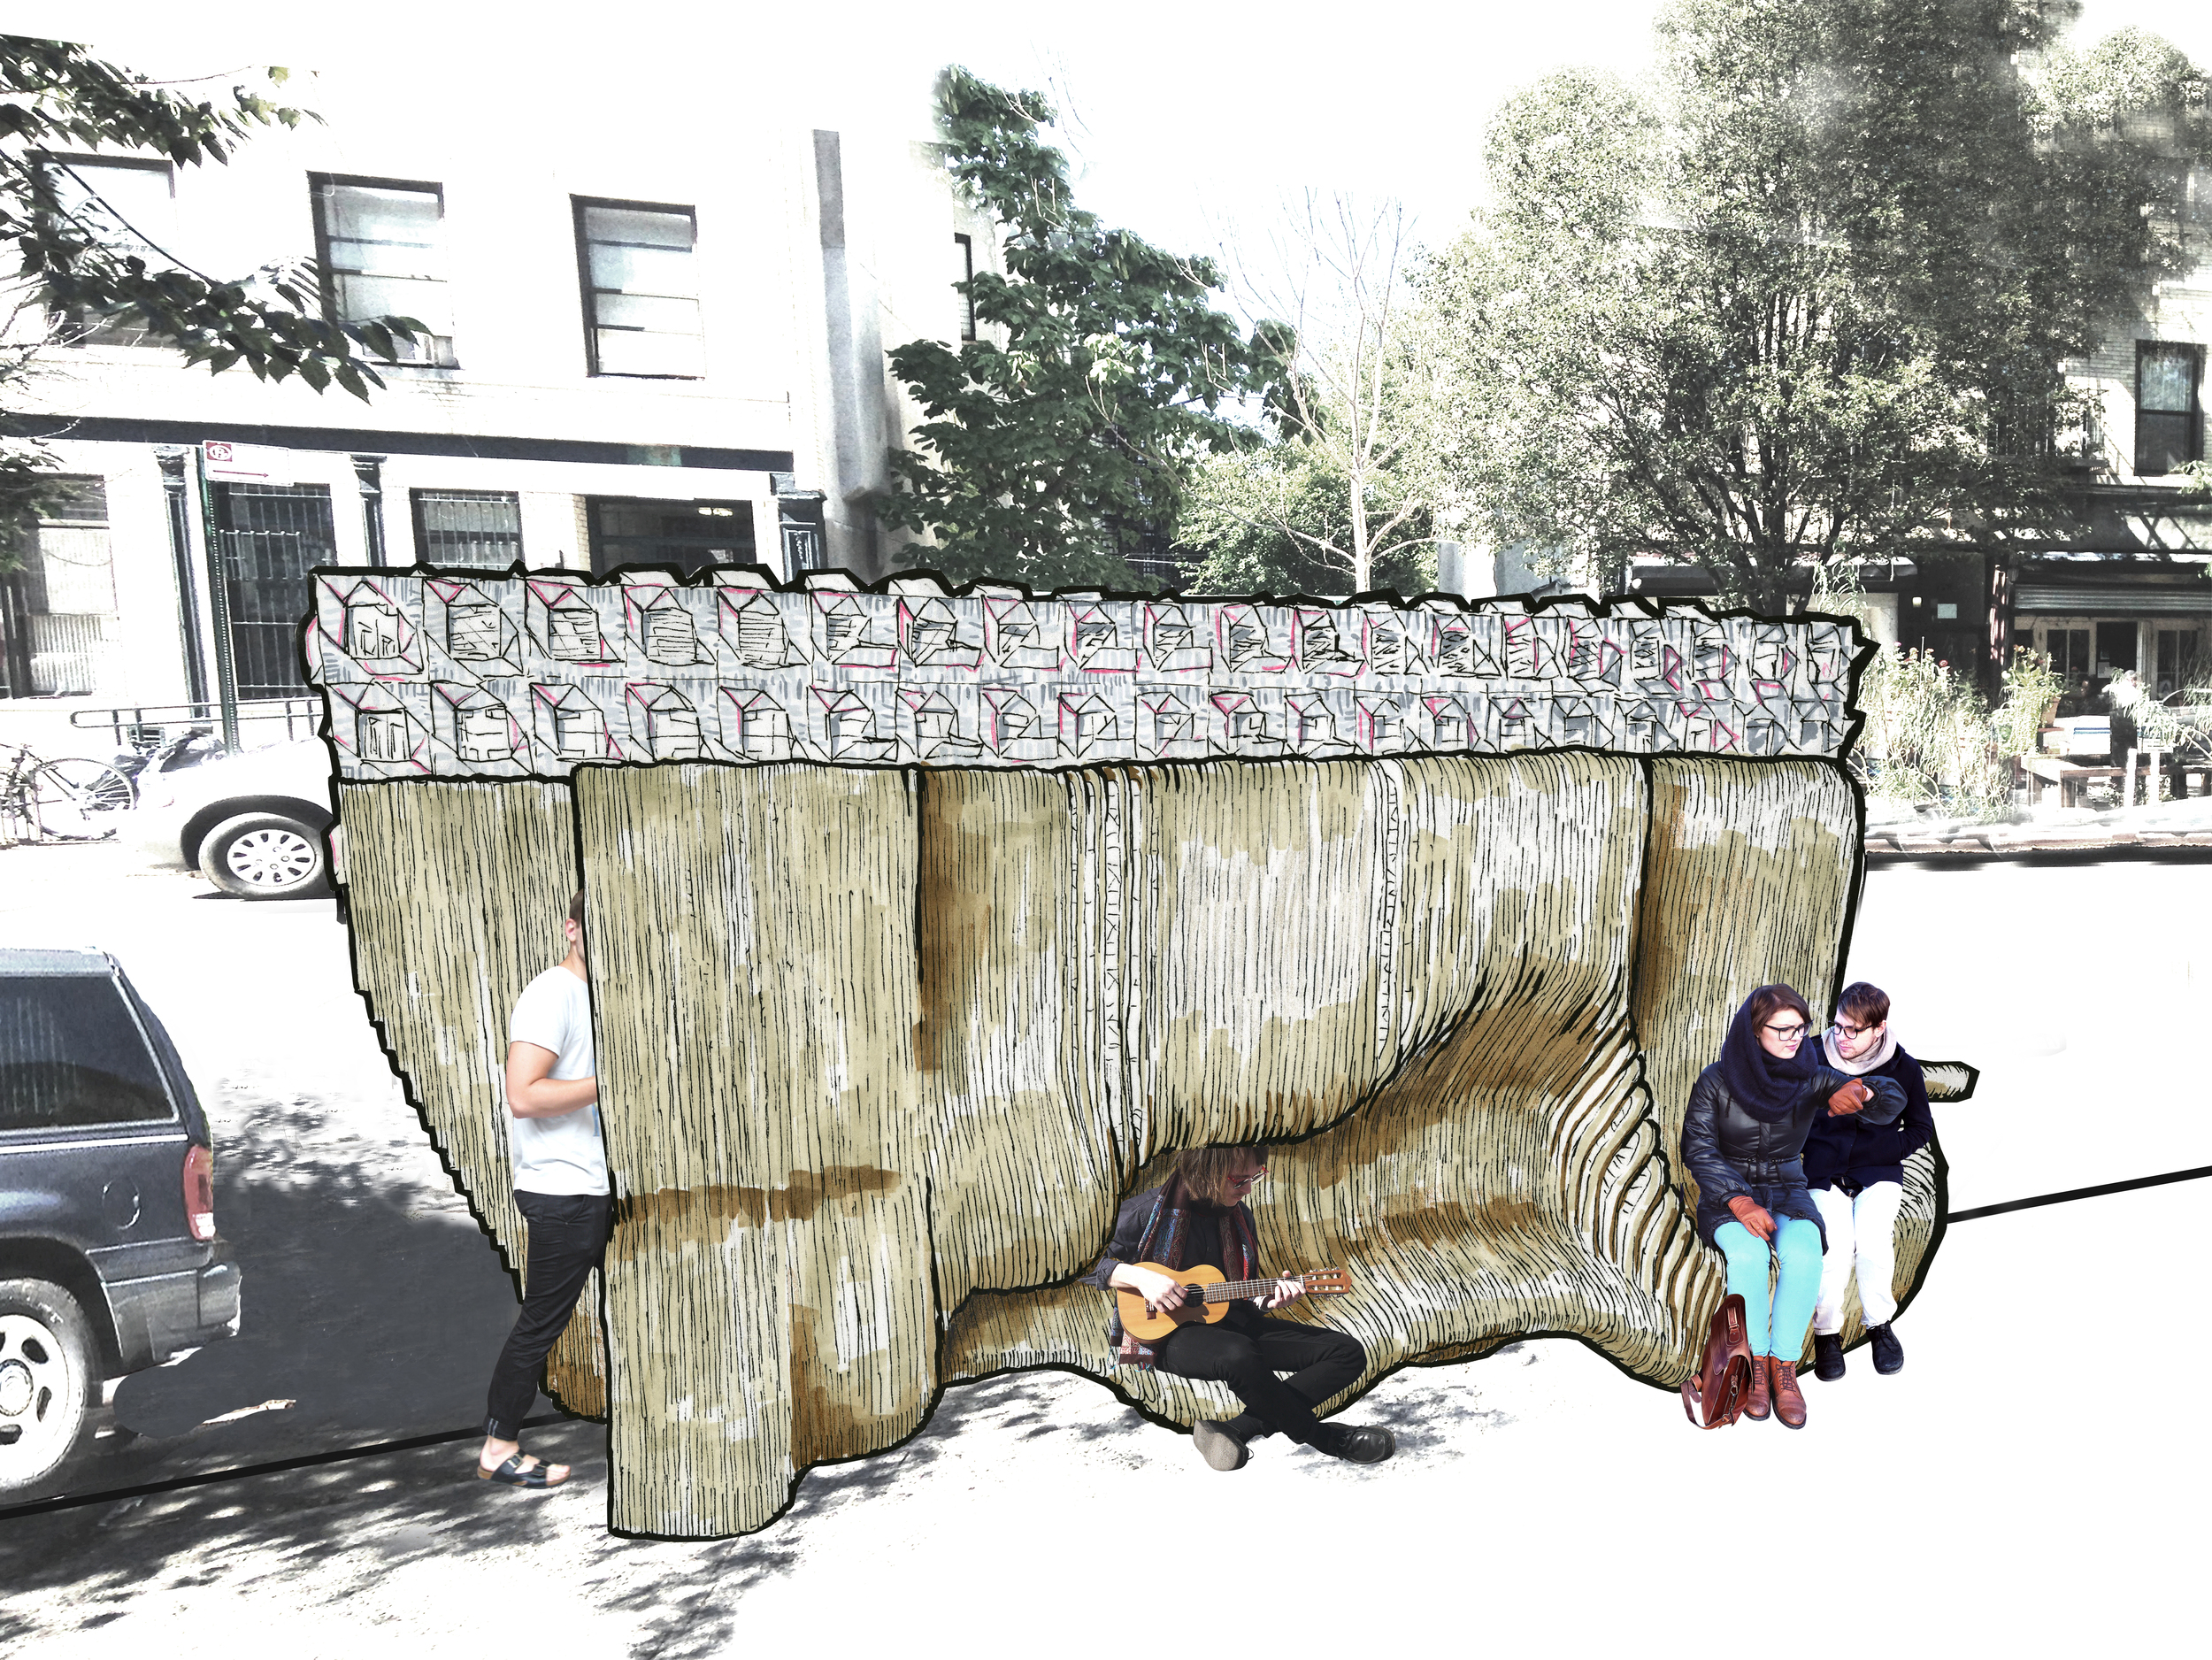 The Body Wall:  The street-side of the body wall provides places and positions for pedestrians to lean, wait and sit.